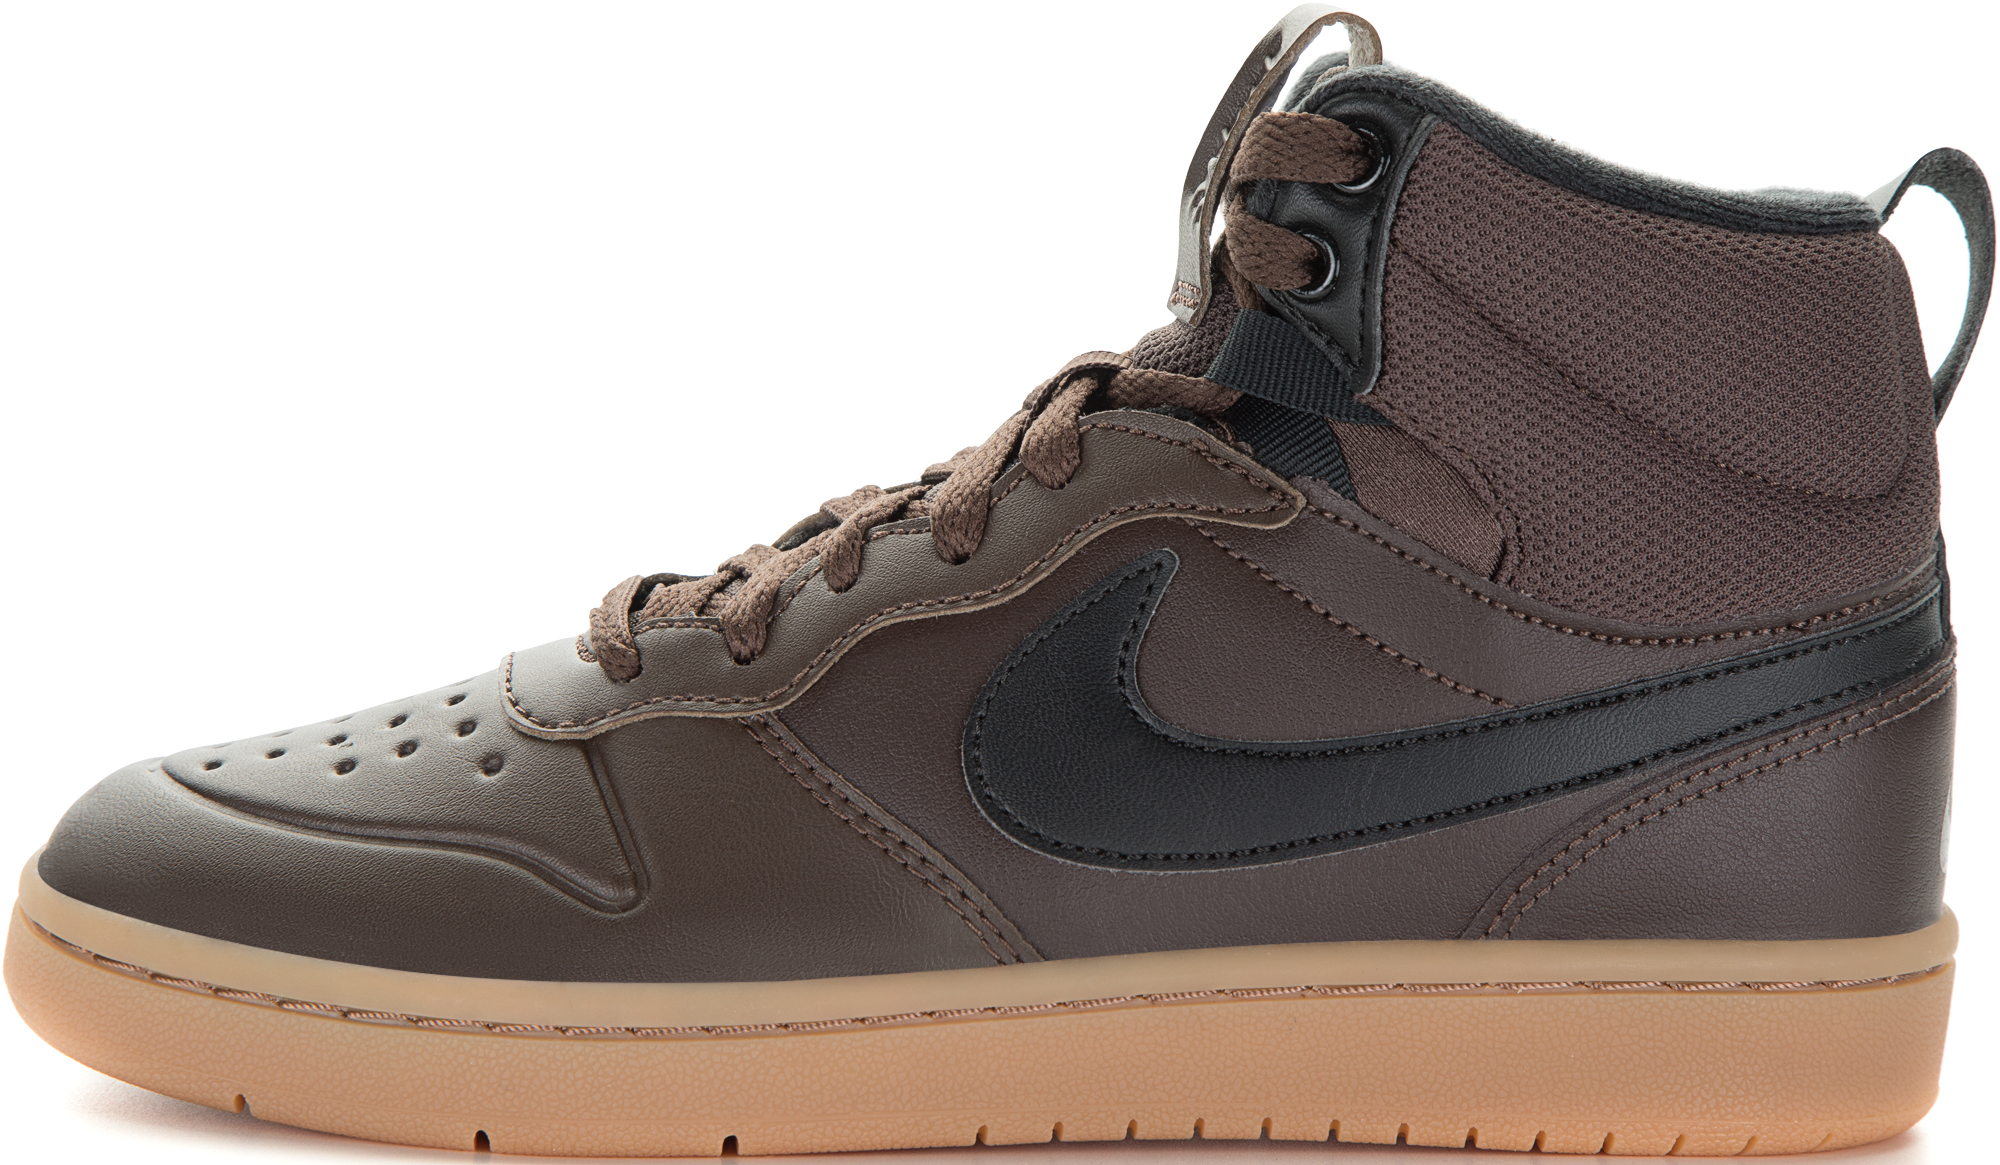 Nike Кеды для мальчиков Nike Court Borough Mid 2 Boot, размер 34,5 кеды nike кеды nike court borough mid td